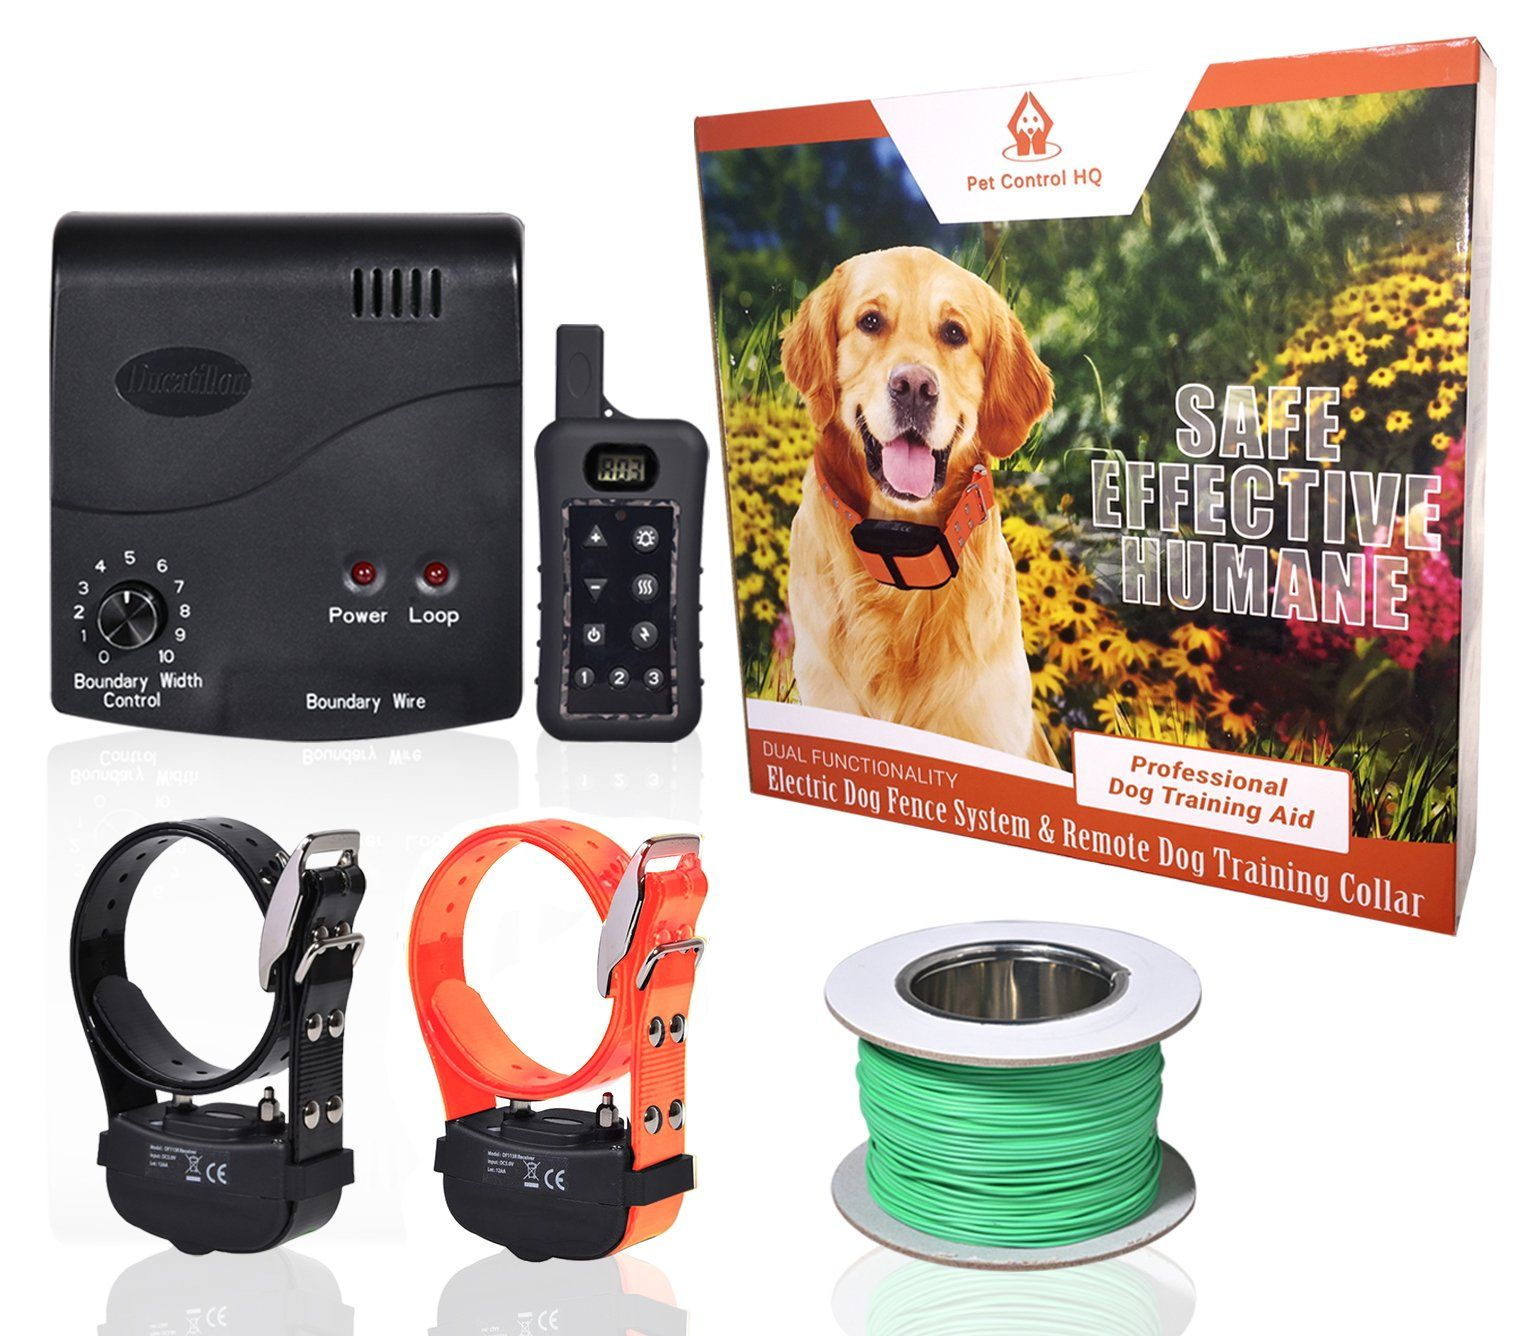 Wireless Combo Electric Dog Fence System With Remote Dog Training Collar By Petcontrolhq Safe Electric Pet Con Wireless Dog Fence Dog Fence Dog Training Collar